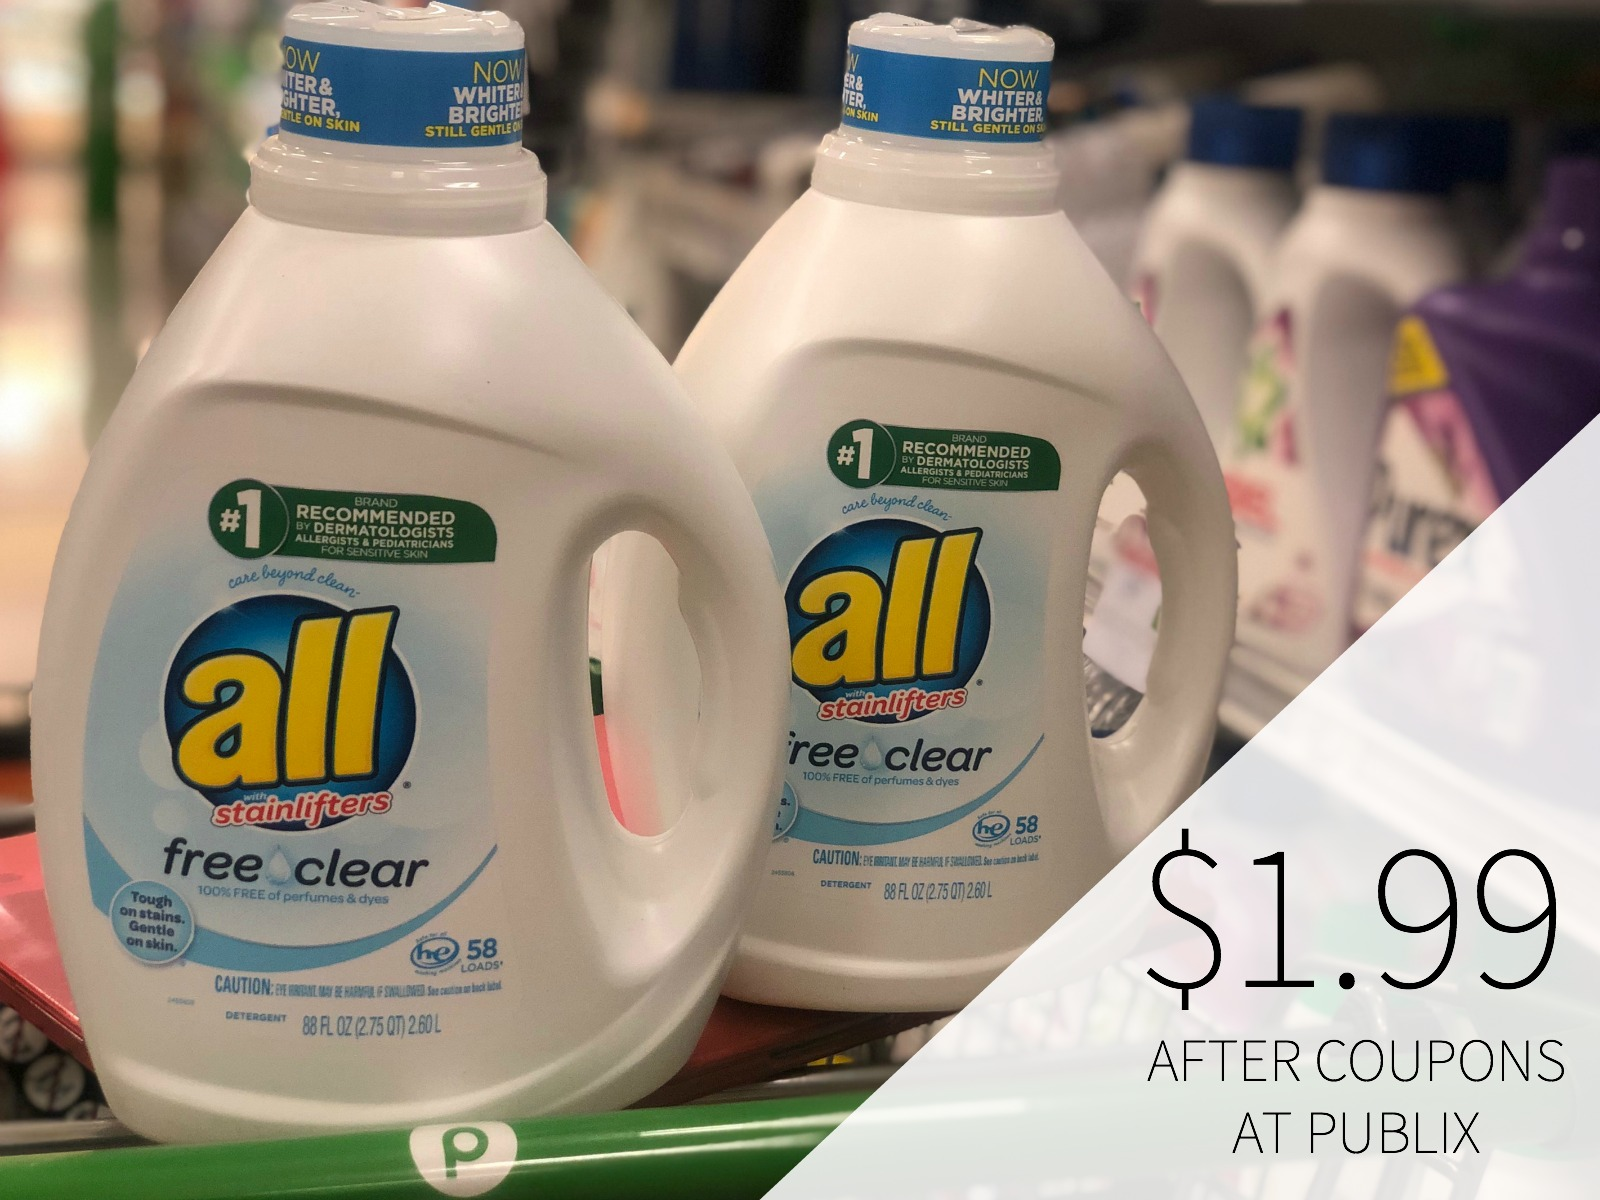 Big Bottles Of All Laundry Detergent Just $1 99 At Publix